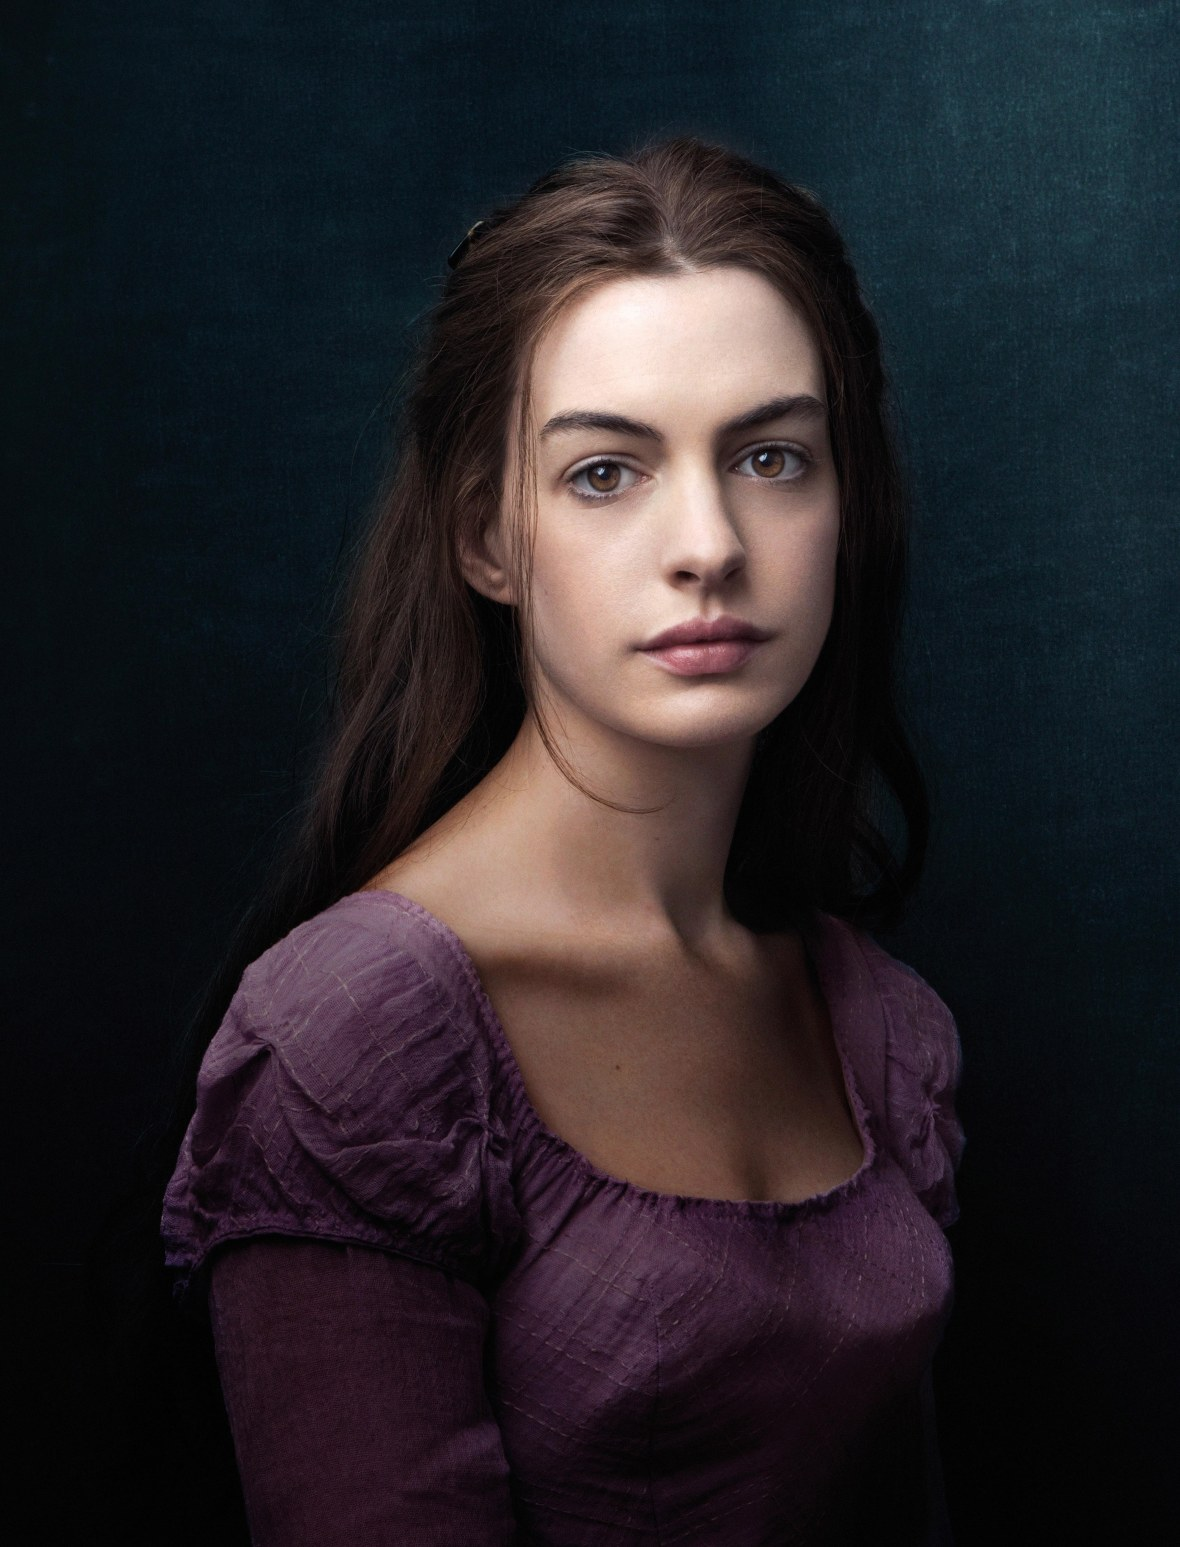 Anne Hathaway as Fantine With Long Hair in 'Les Misérables'